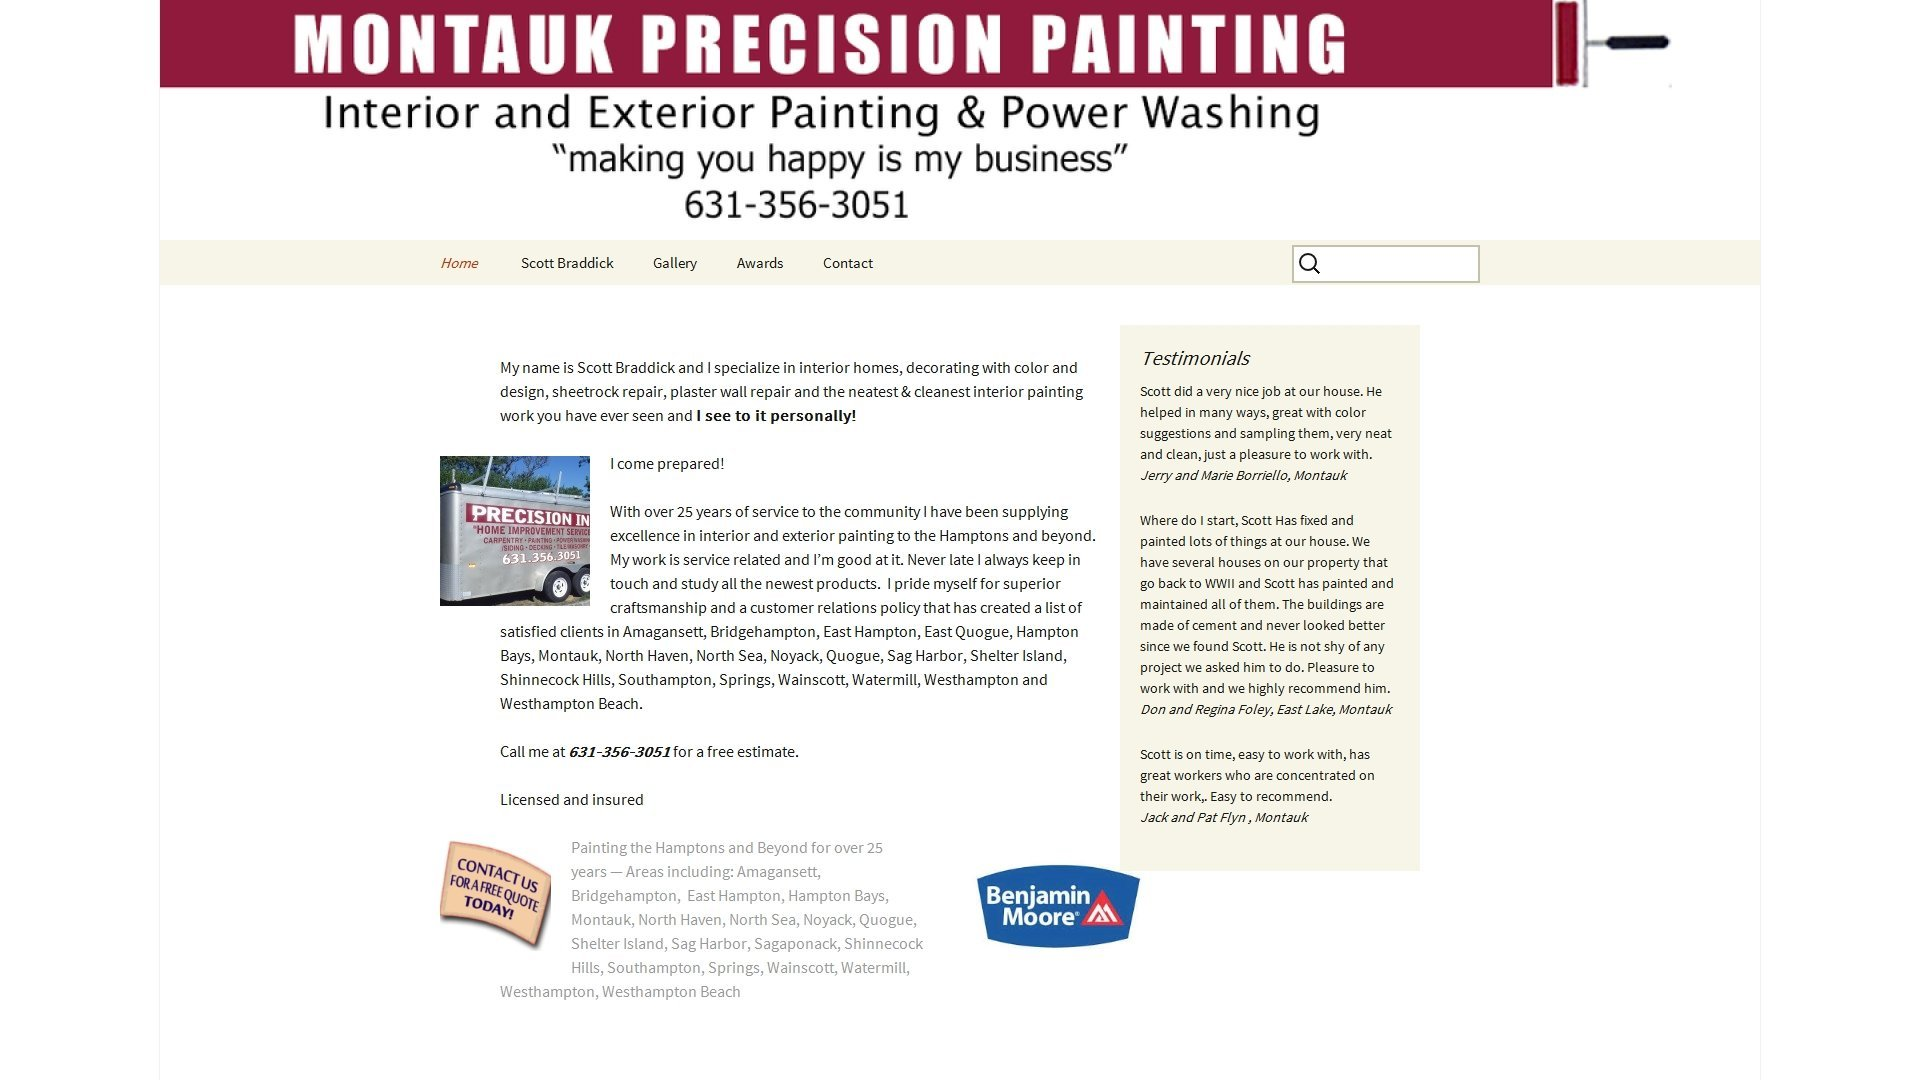 montaukprecisionpainting.com_